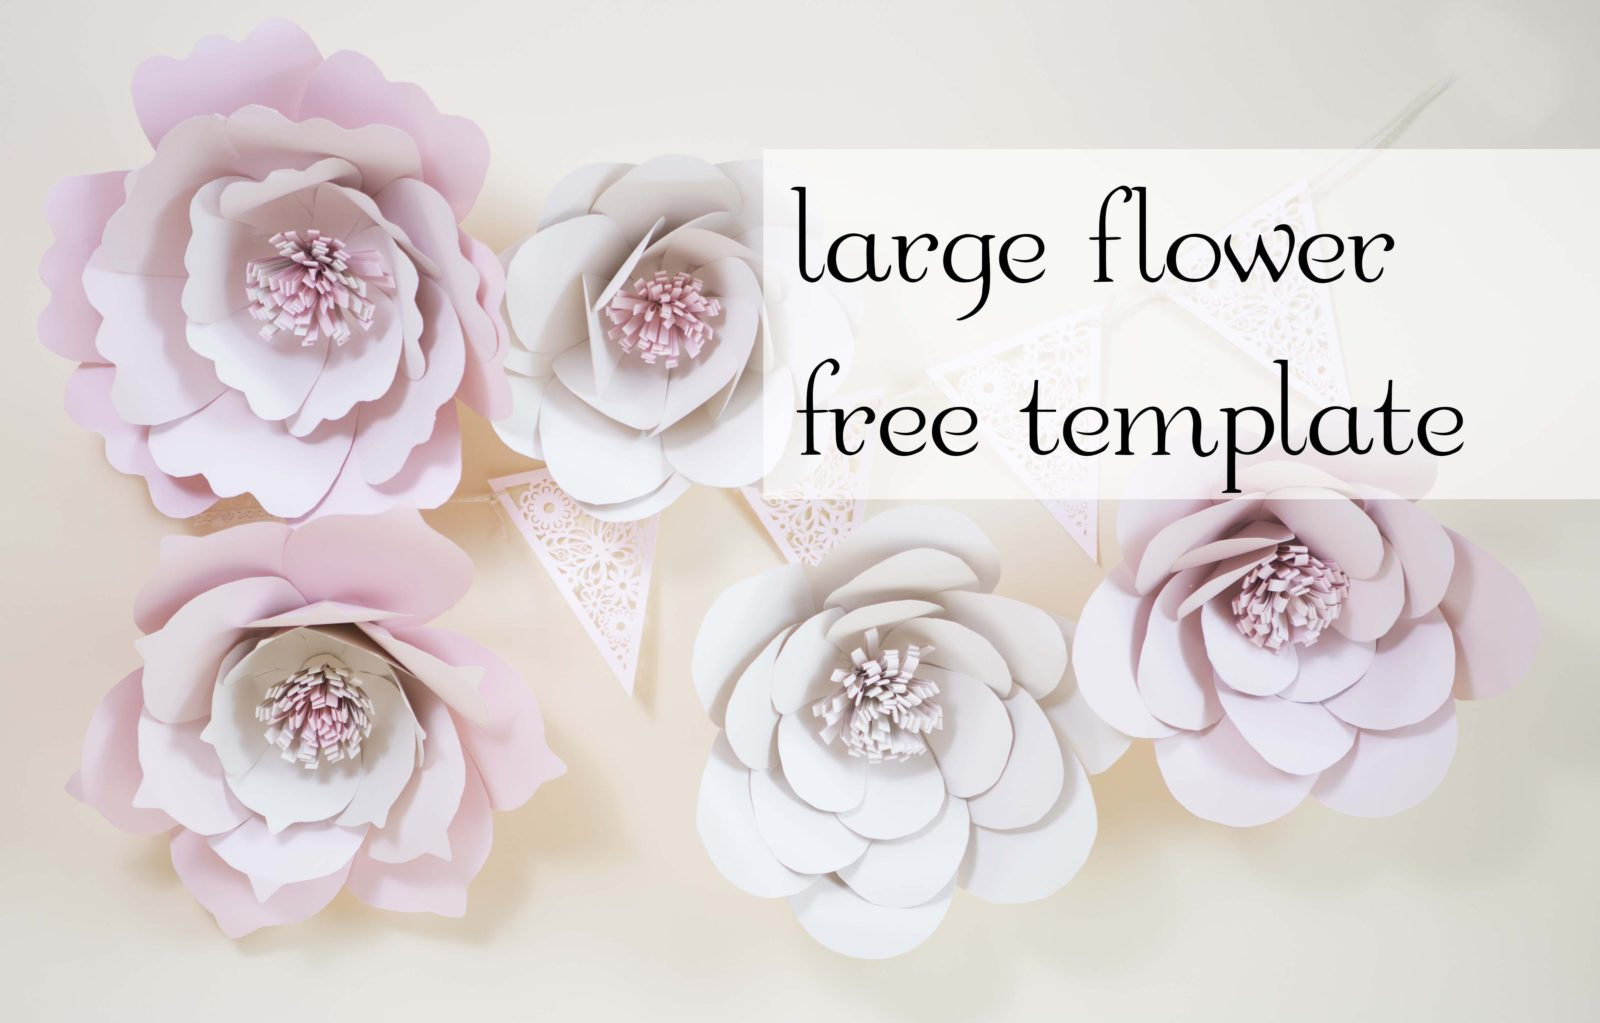 Giant paper flowers free template for Free printable paper flower templates